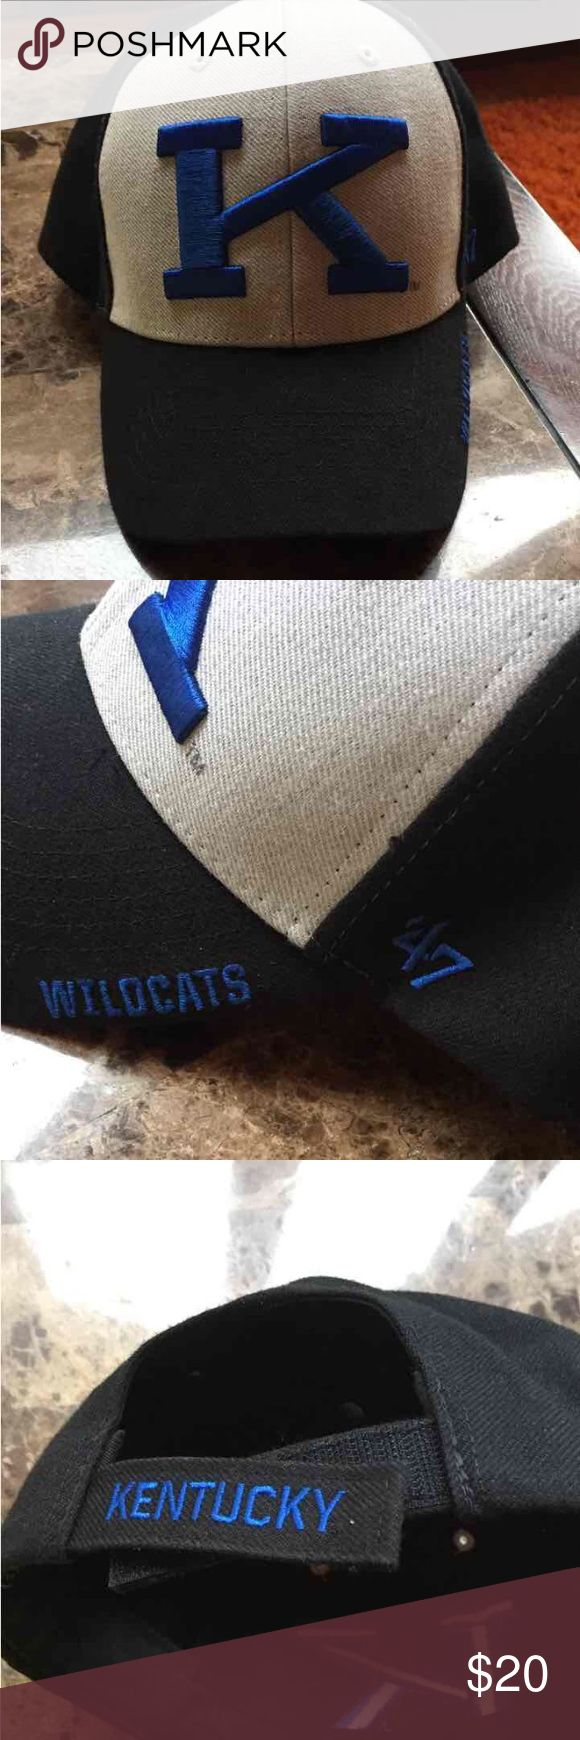 UK baseball cap Black grey blue K cap. Bought at Kentucky Wearhouse. Like new. Accessories Hats